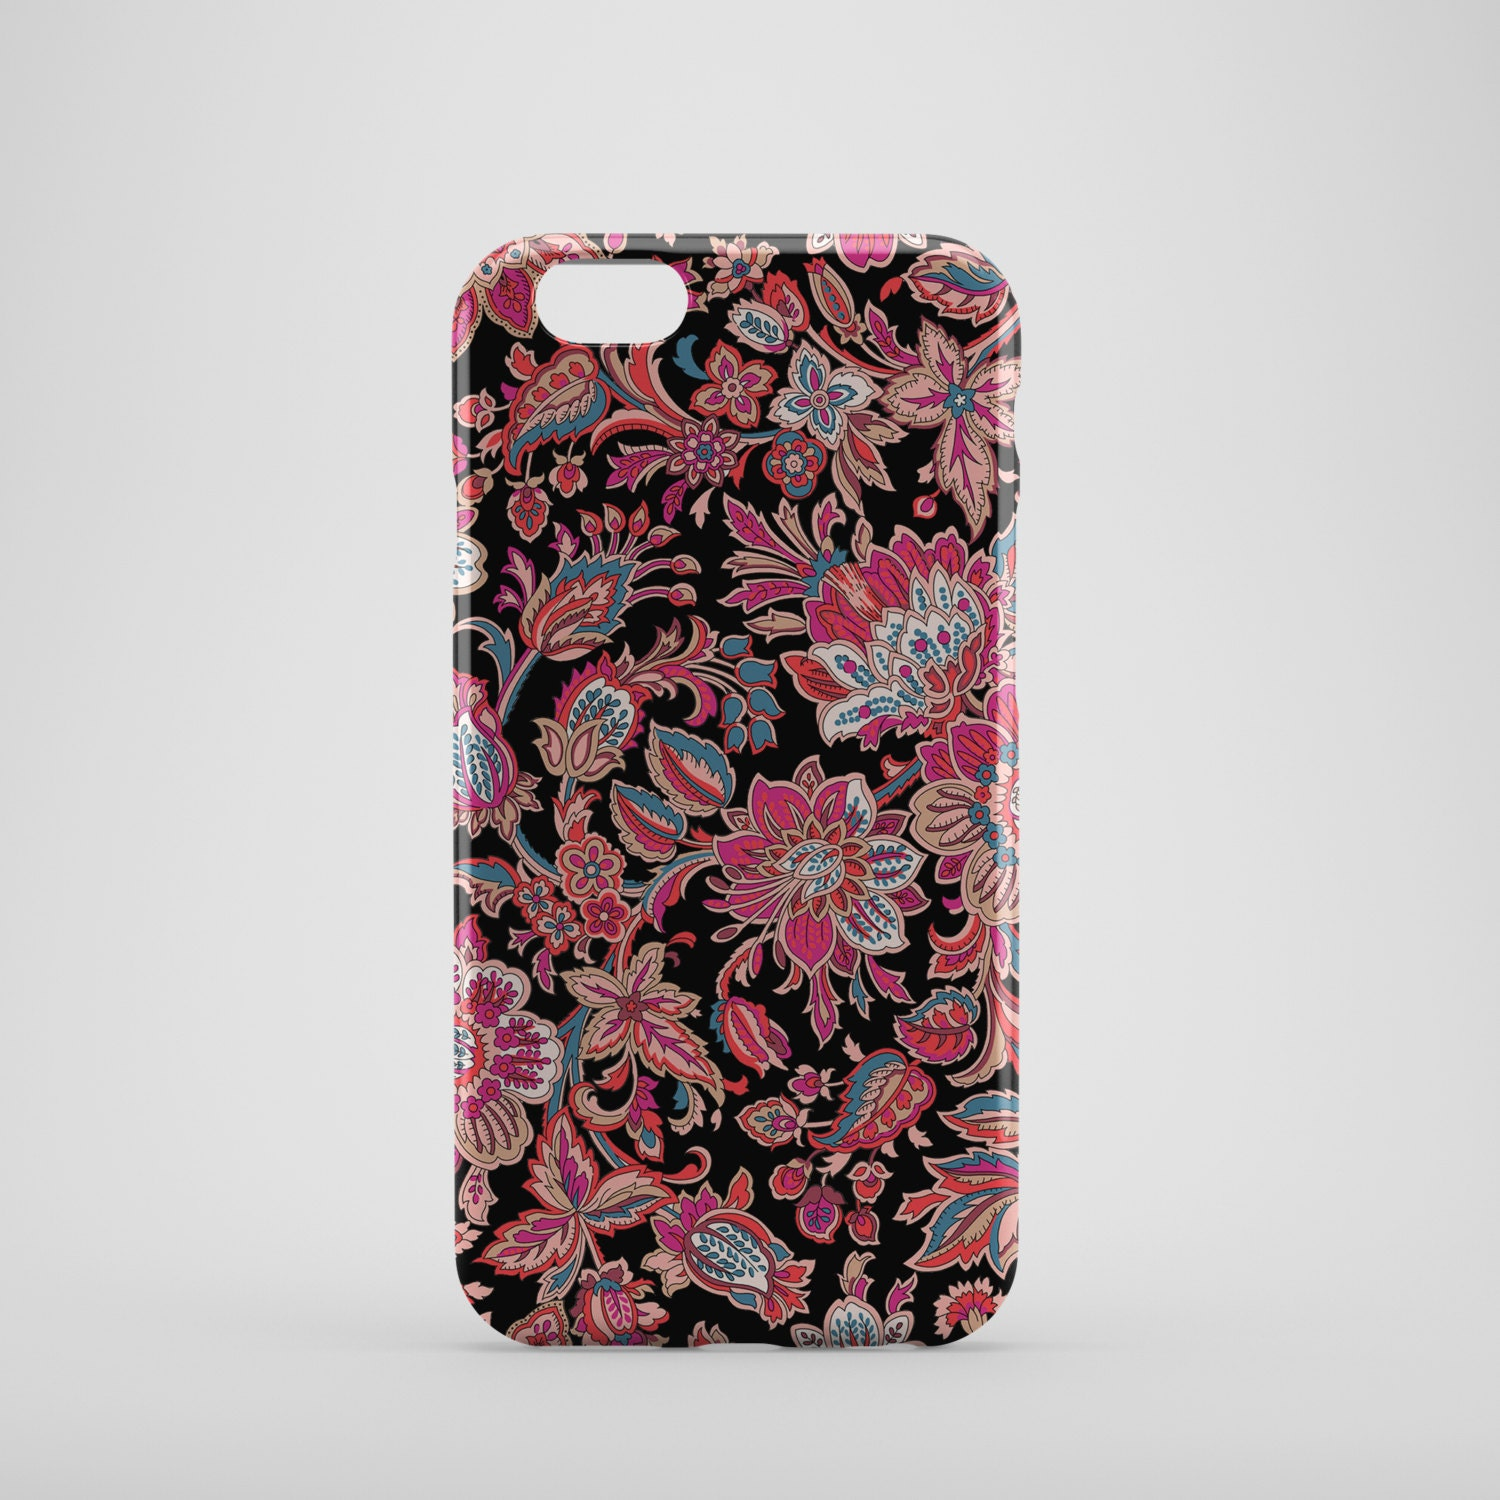 Abstract Floral iPhone Case iPhone 6 Case iPhone 6s Case iPhone 6 Plus Case iPhone 5C Case iPhone 5 Case iPhone 4 Case SS133d3